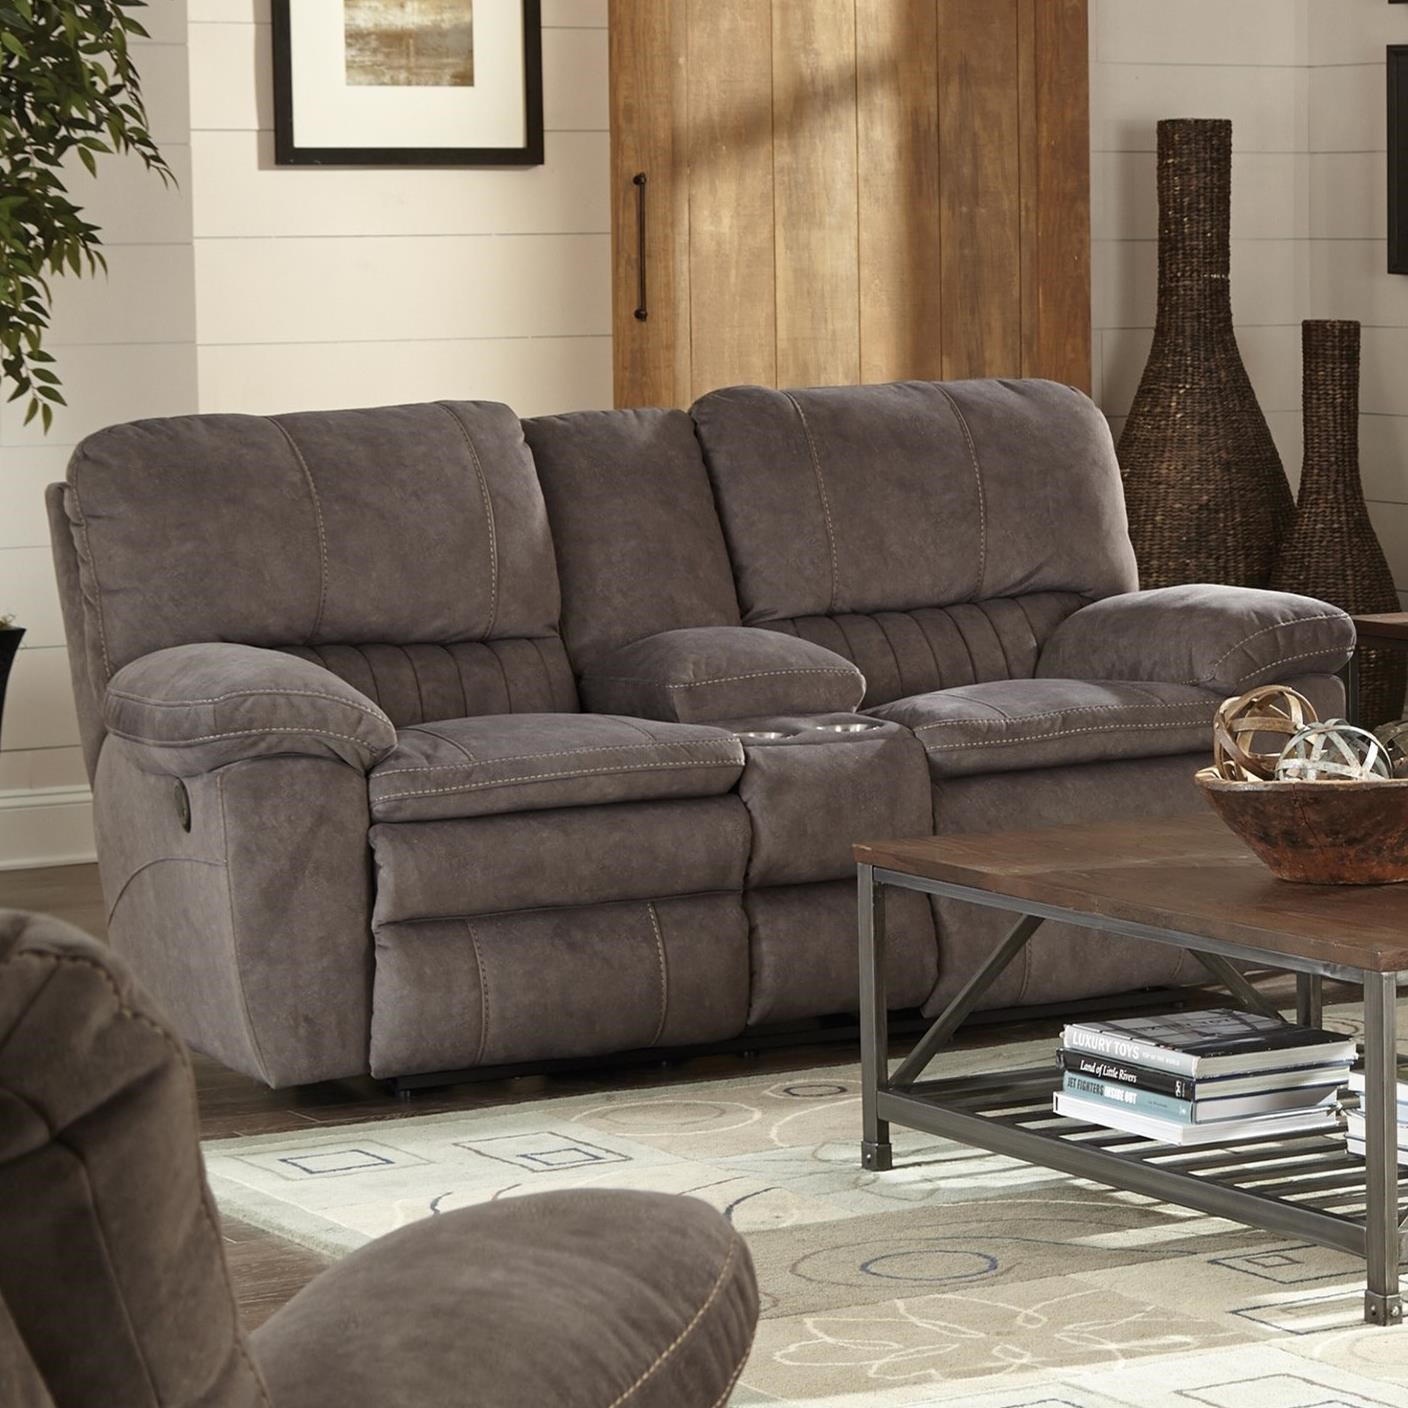 Reyes Power Lay Flat Reclining Console Loveseat by Catnapper at Northeast Factory Direct